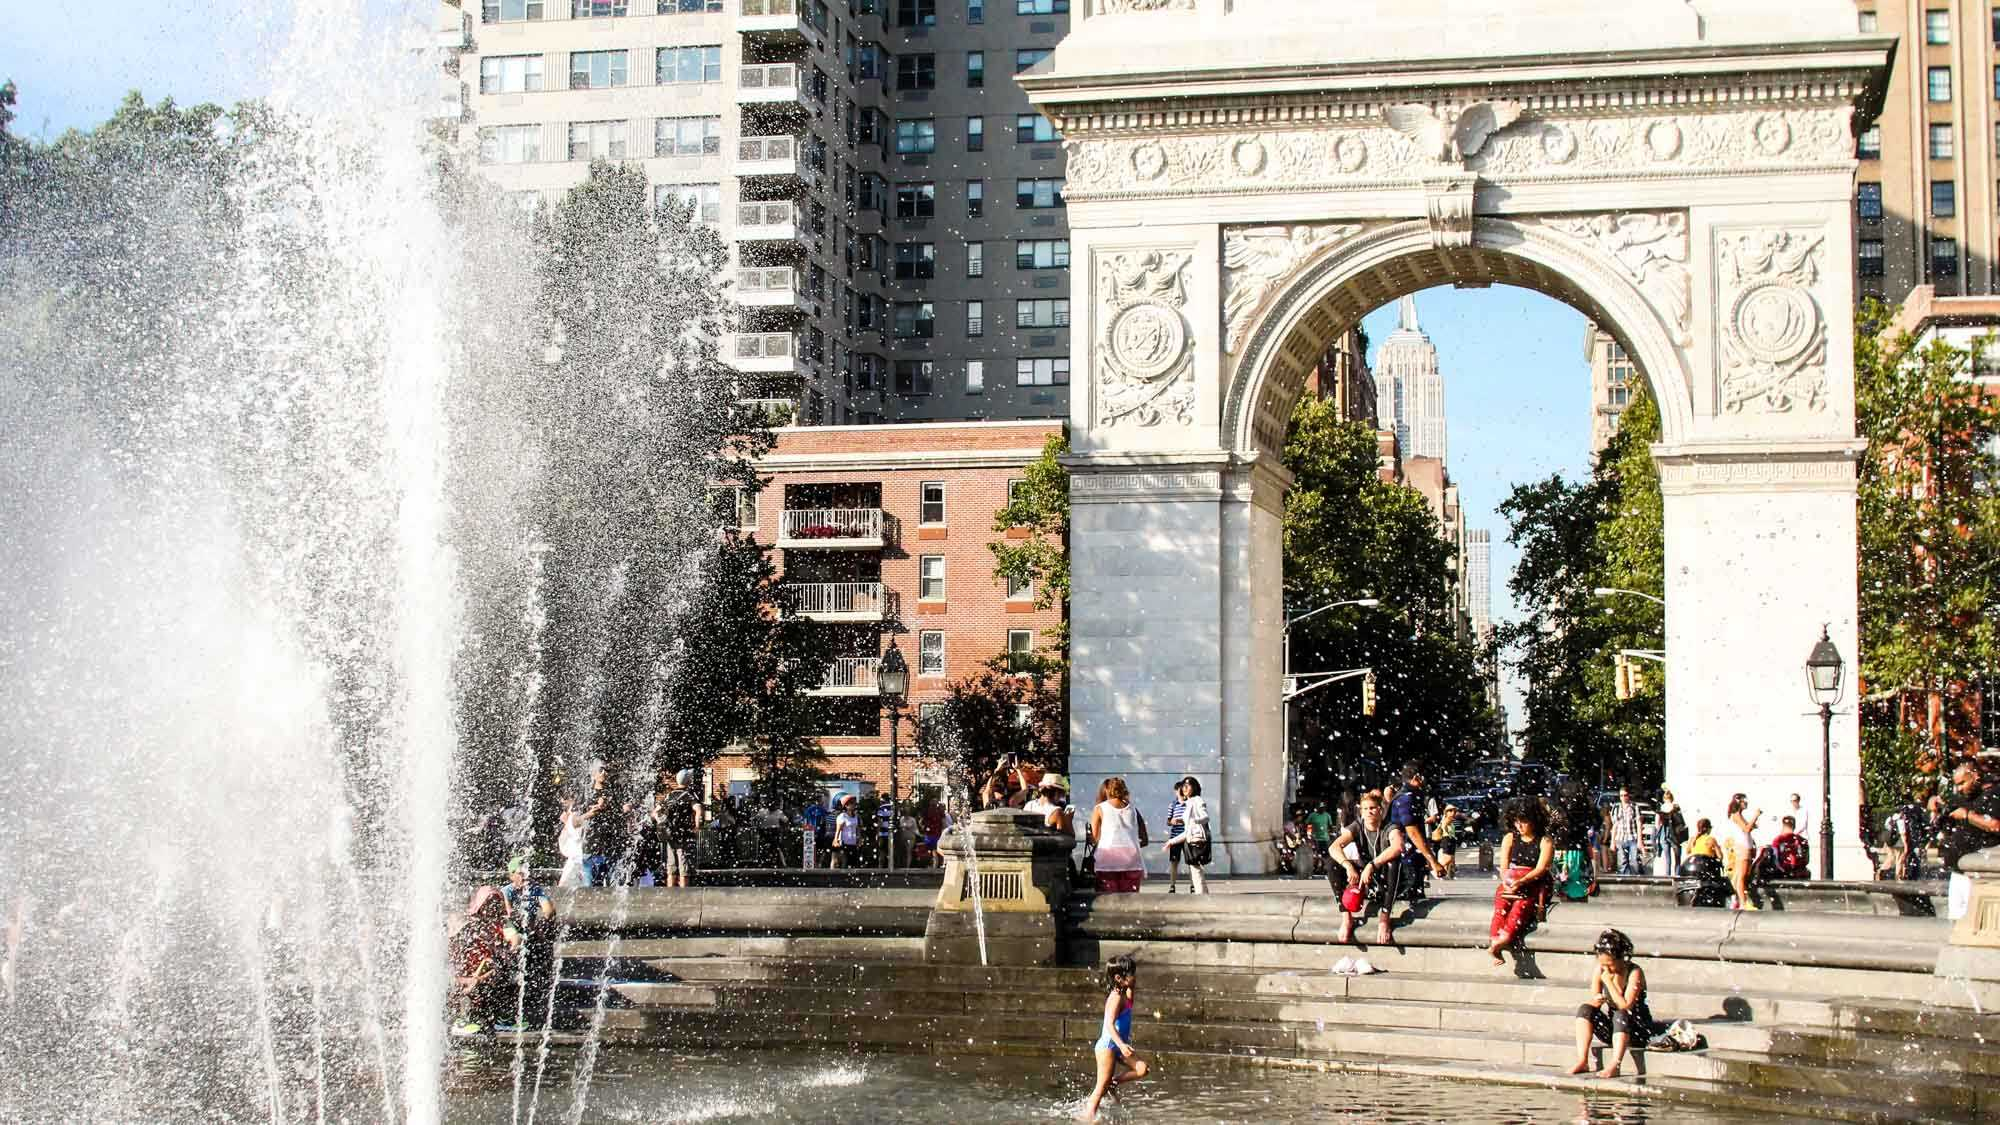 fountain and arch at Washington Square Park in Greenwich Village neighborhood, New York